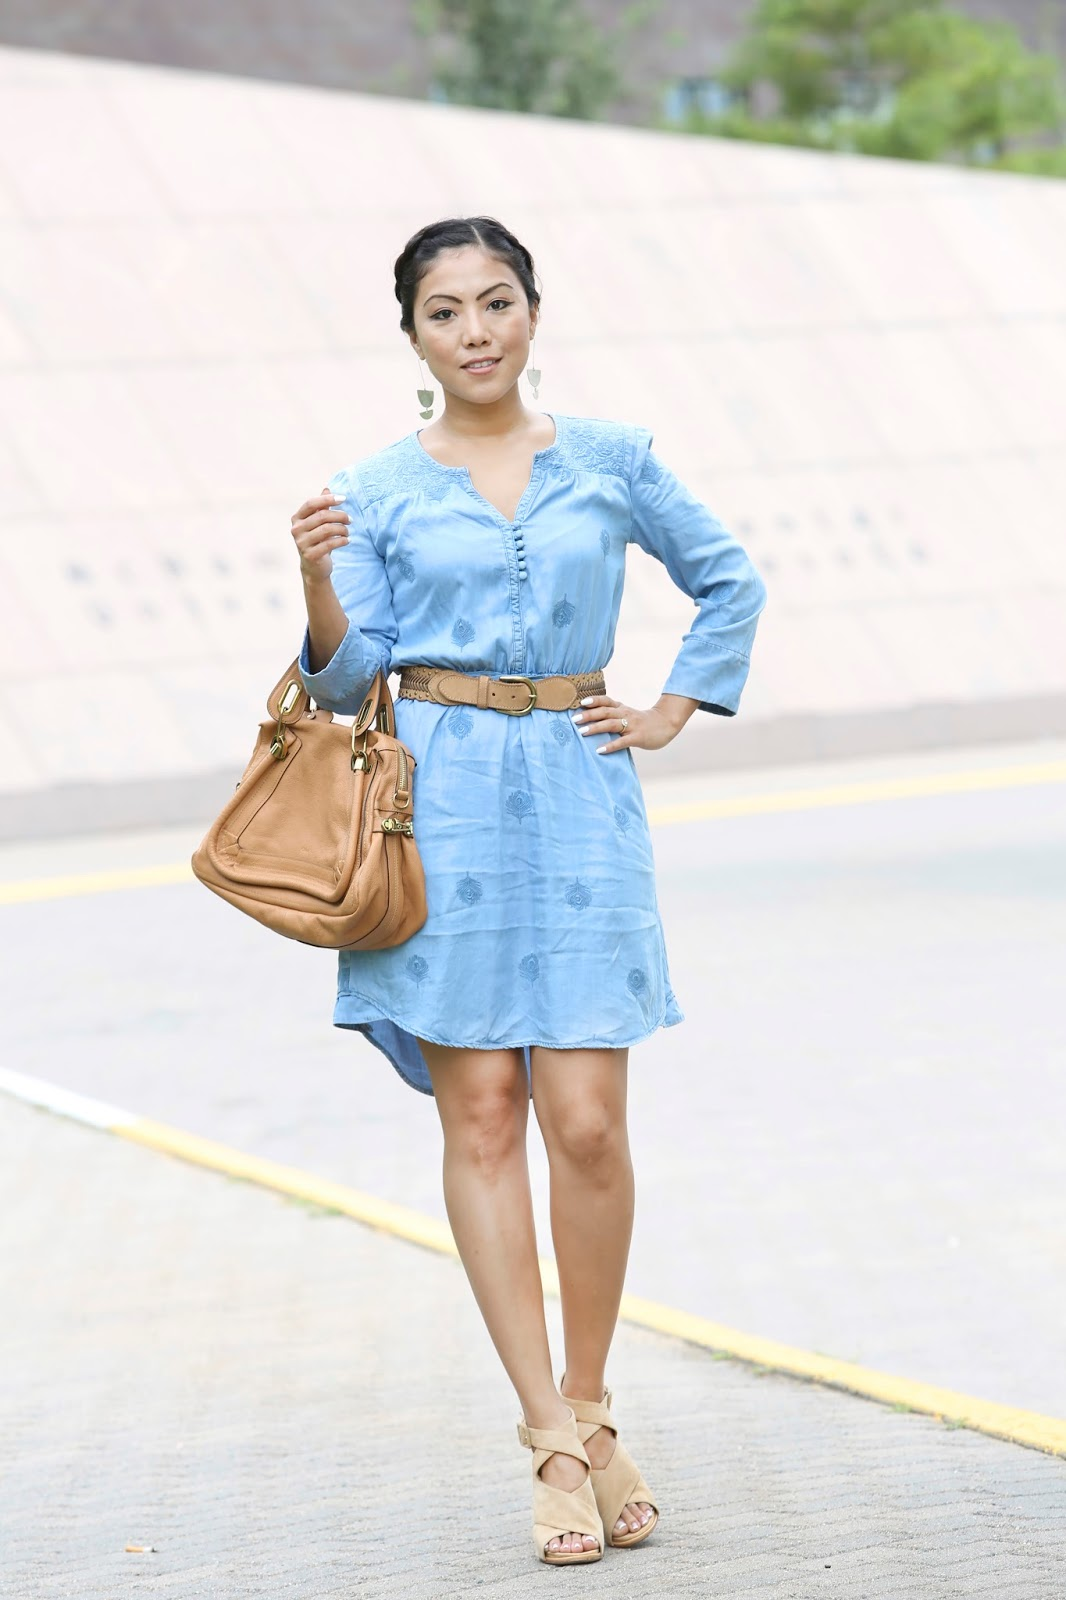 Colour Shoes To Wear With Blue Dress